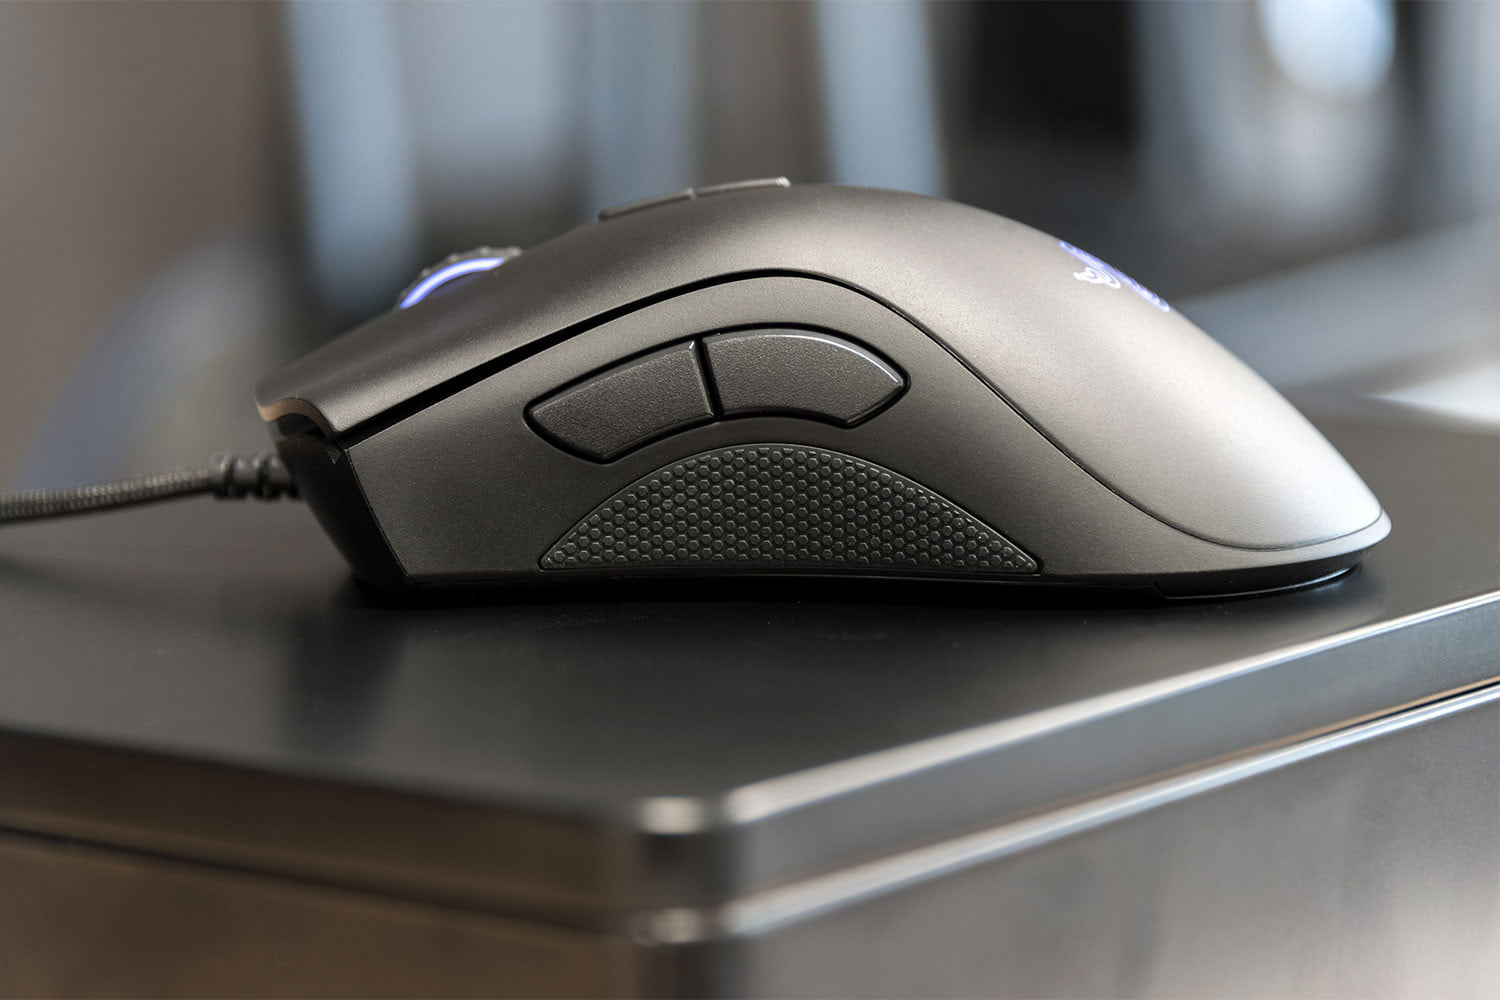 c134f442216 The Best Gaming Mouse of 2019 | Digital Trends